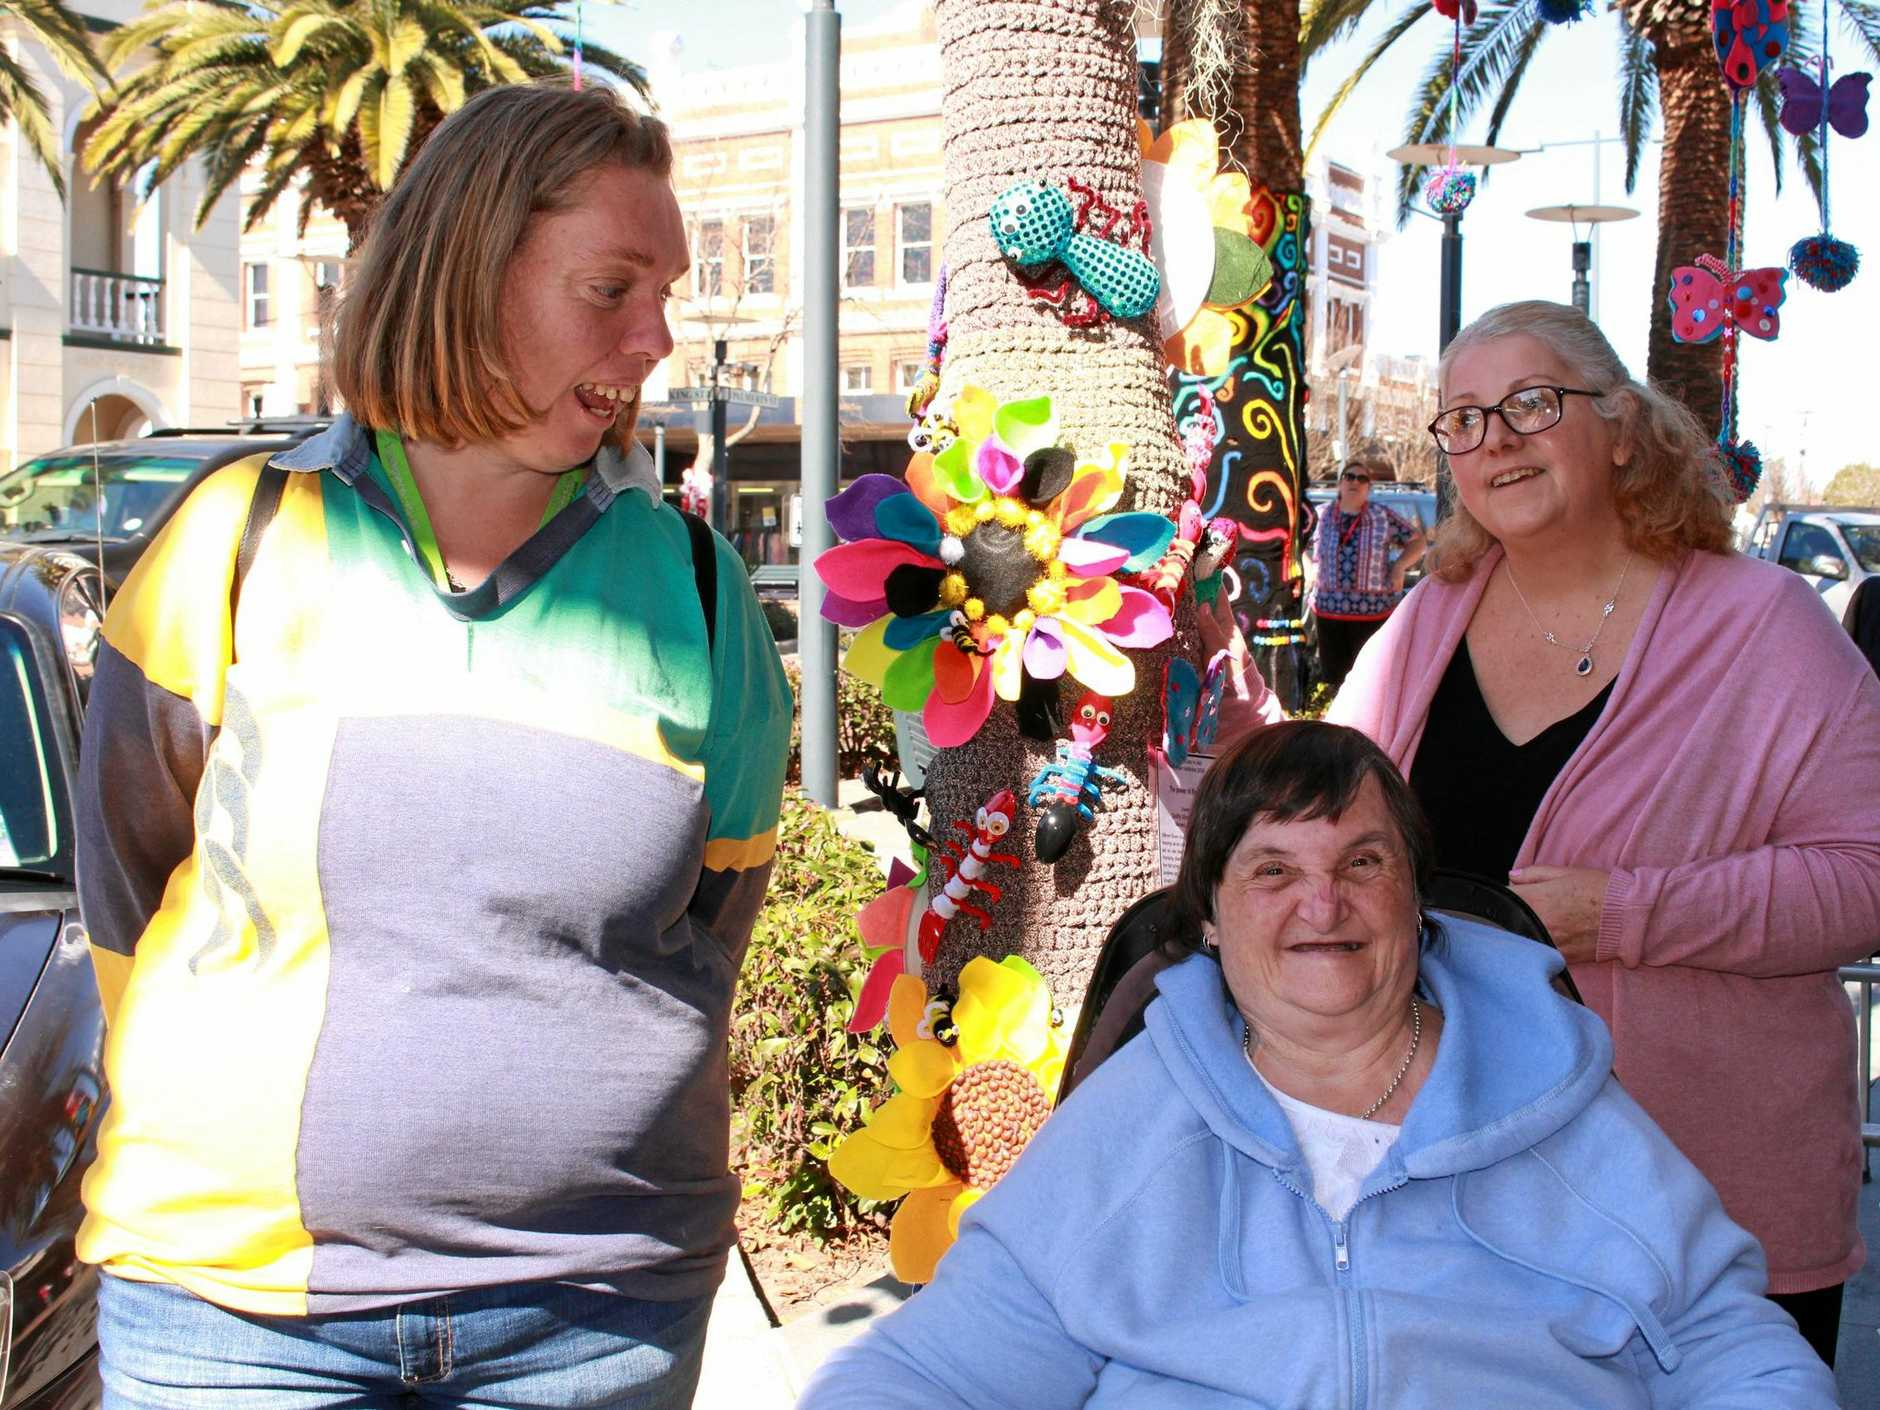 Ruth Watts, Donna Shields and Jodie Bywaters enjoyed seeing their project come to life.